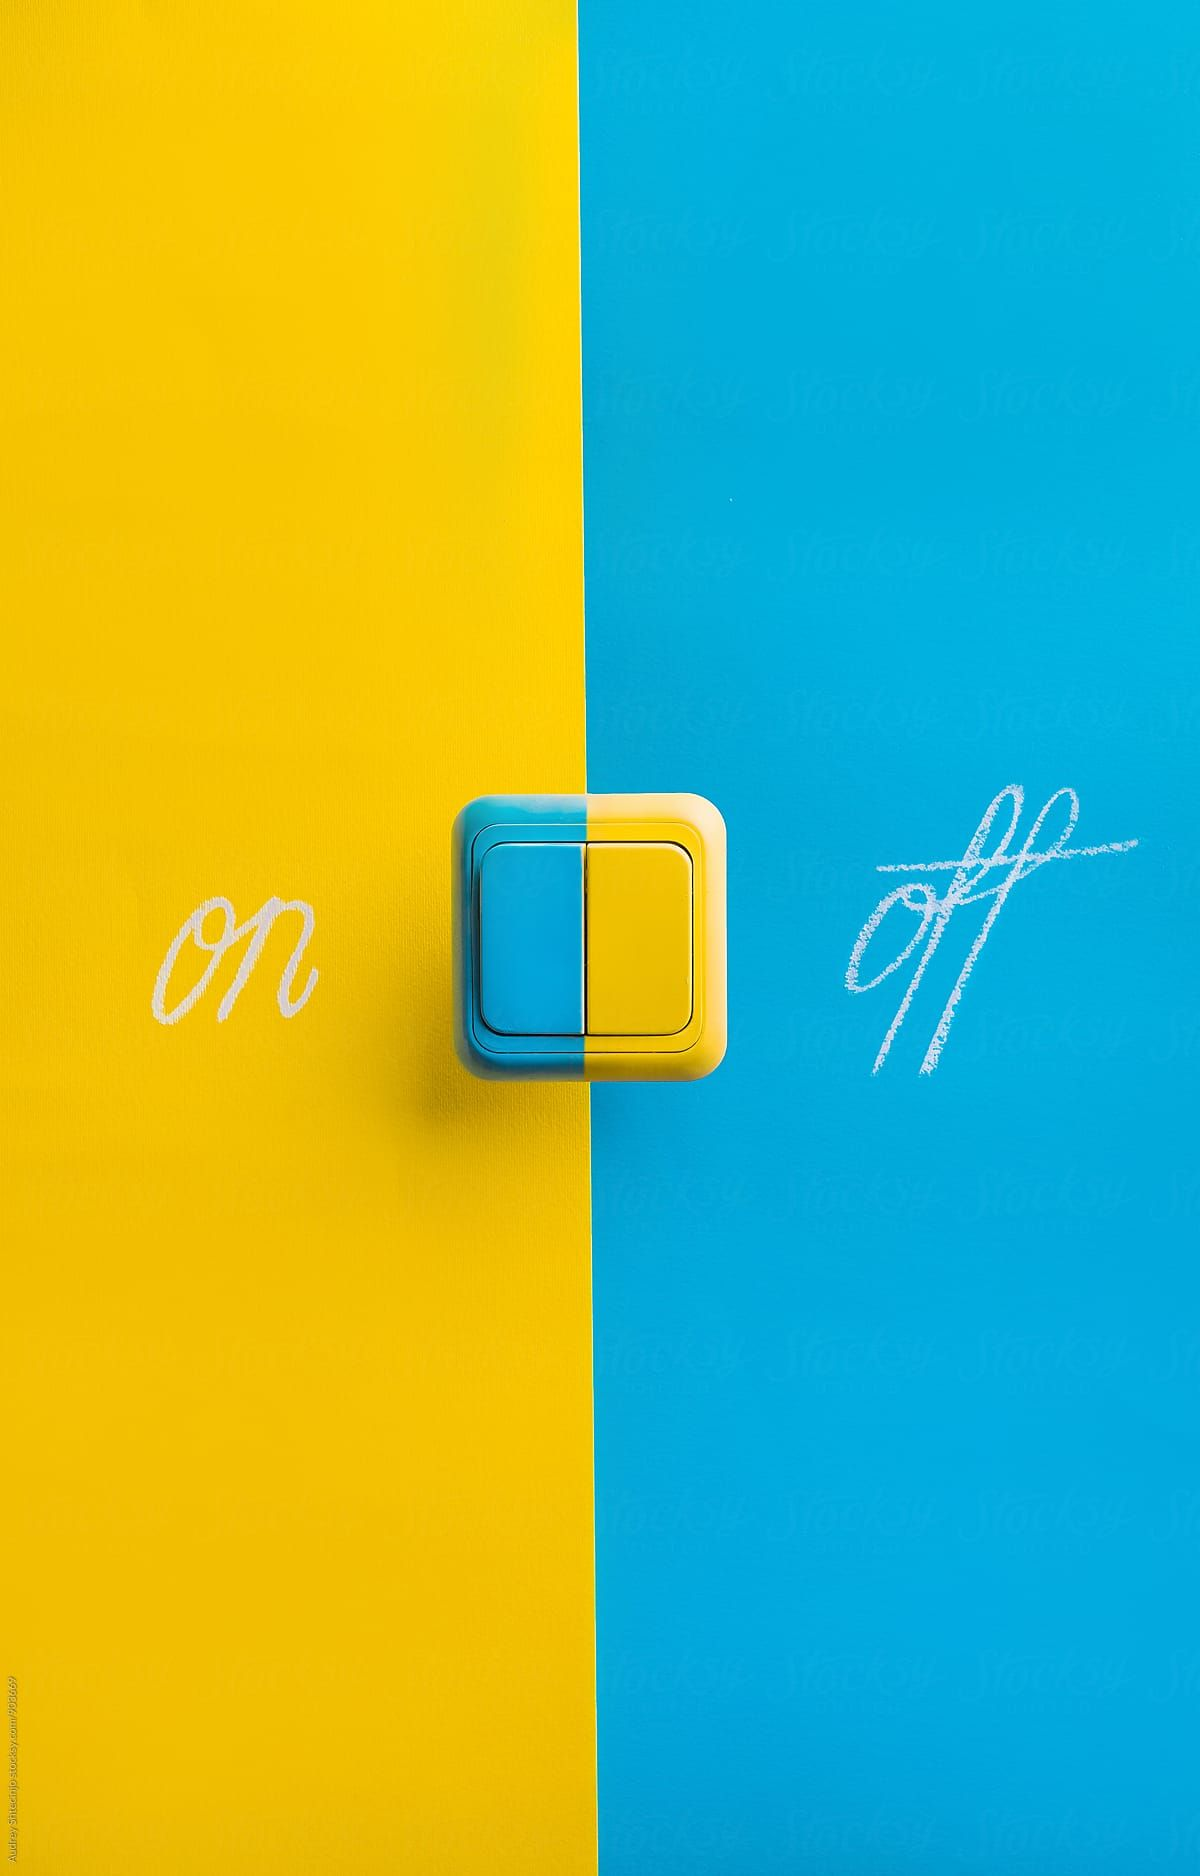 Switch For Turning Light Or Device On Or Off On Yellow And Blue Background By Audrey Shtecinjo For Sto Blue Wallpaper Iphone Yellow Aesthetic Blue Backgrounds